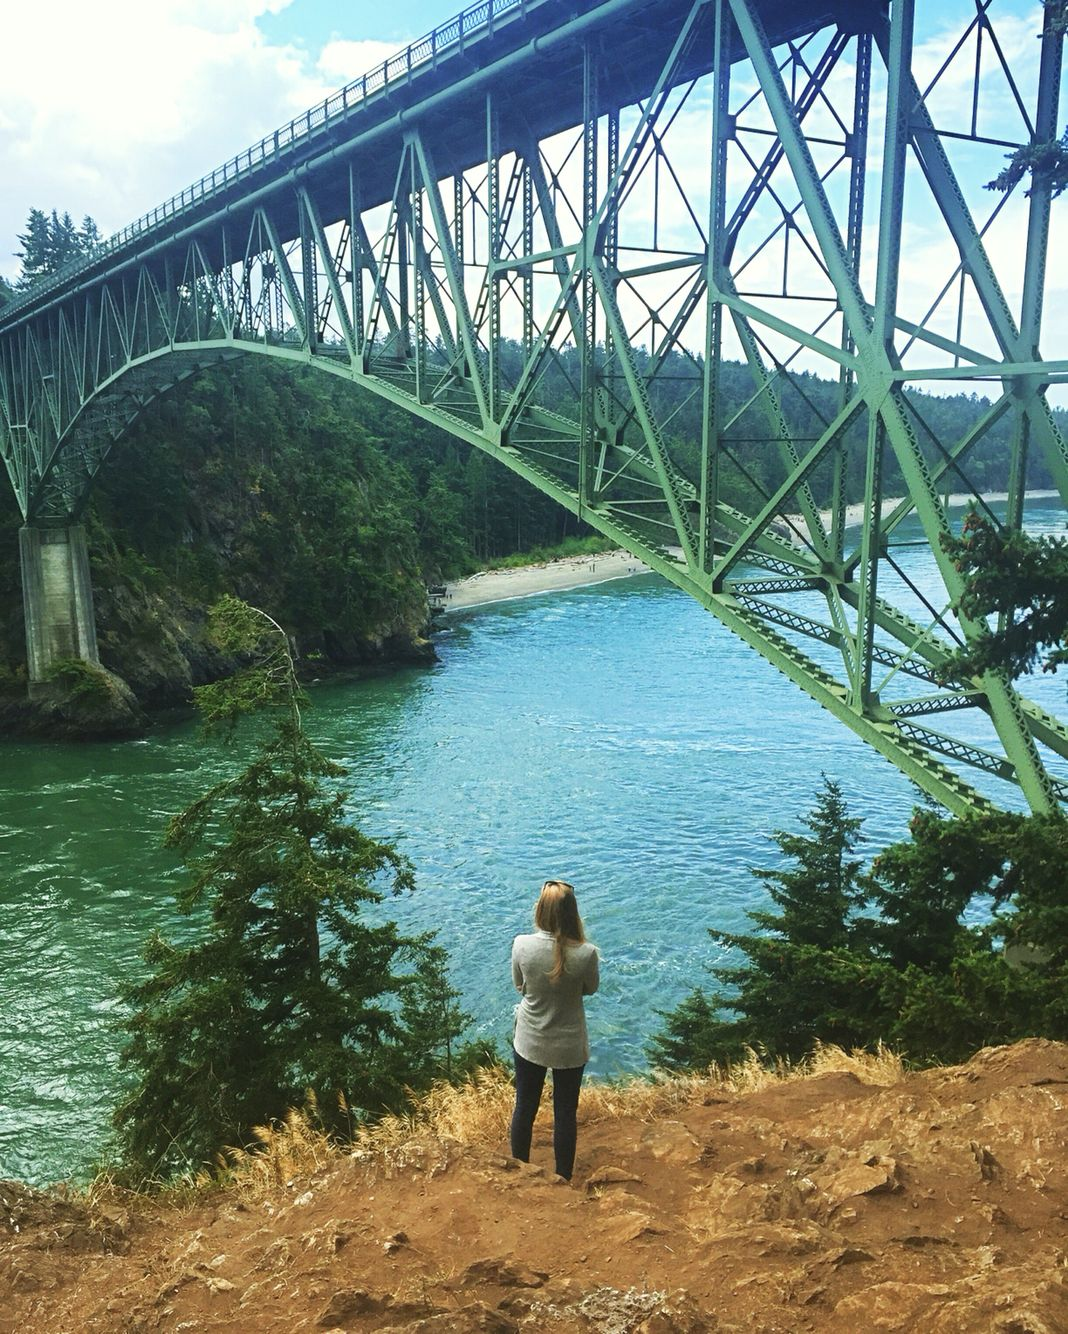 Deception pass bridge- Whidbey Island WA